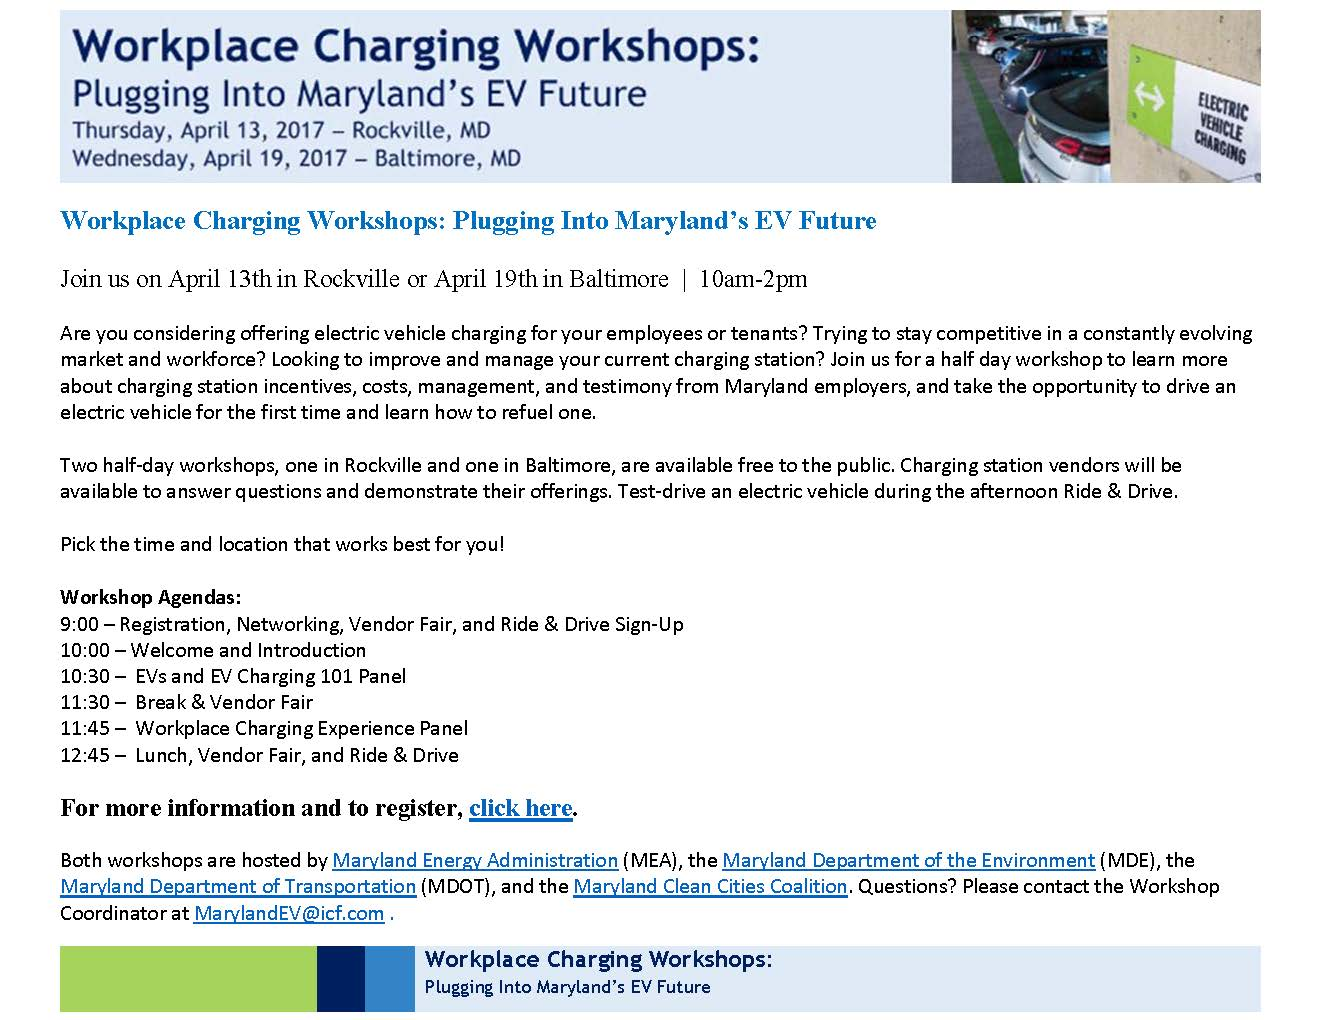 MD Workplace Charging Workshops Email.jpg